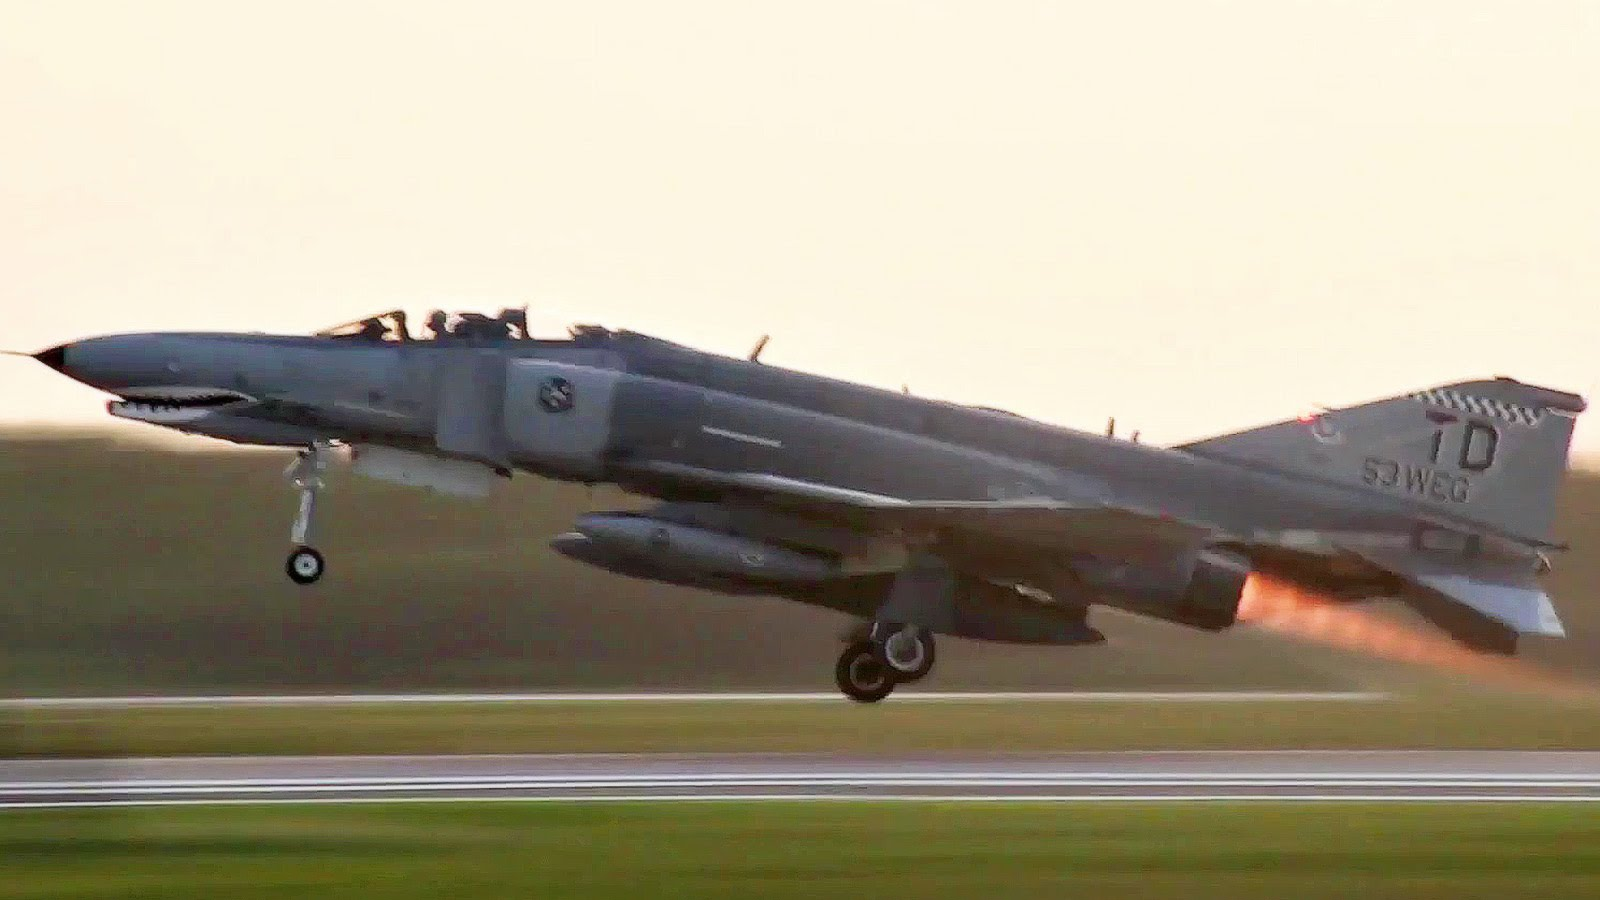 QF-4 Phantom Preflight, Takeoff